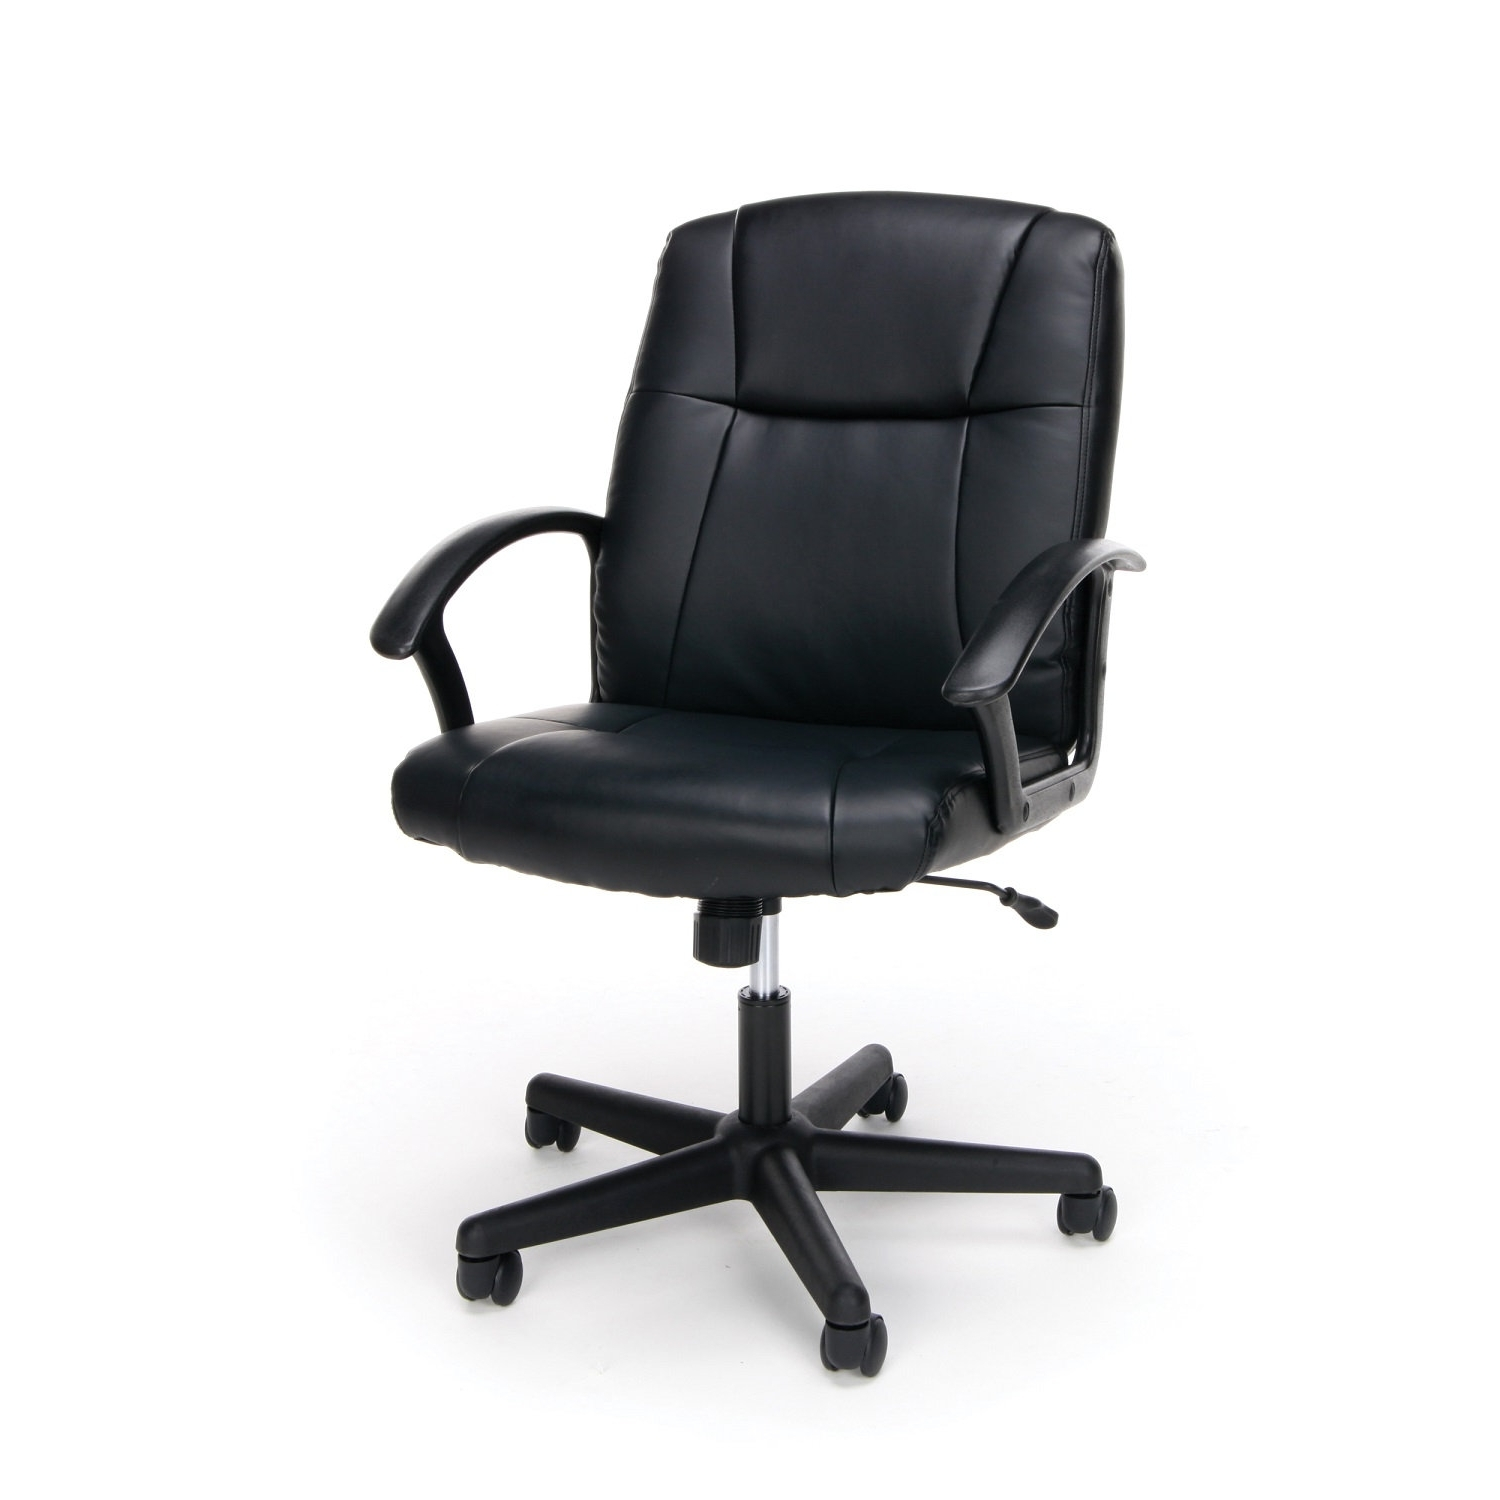 Executive Office Chairs Without Arms Pertaining To Most Up To Date Office Essentials (View 4 of 20)